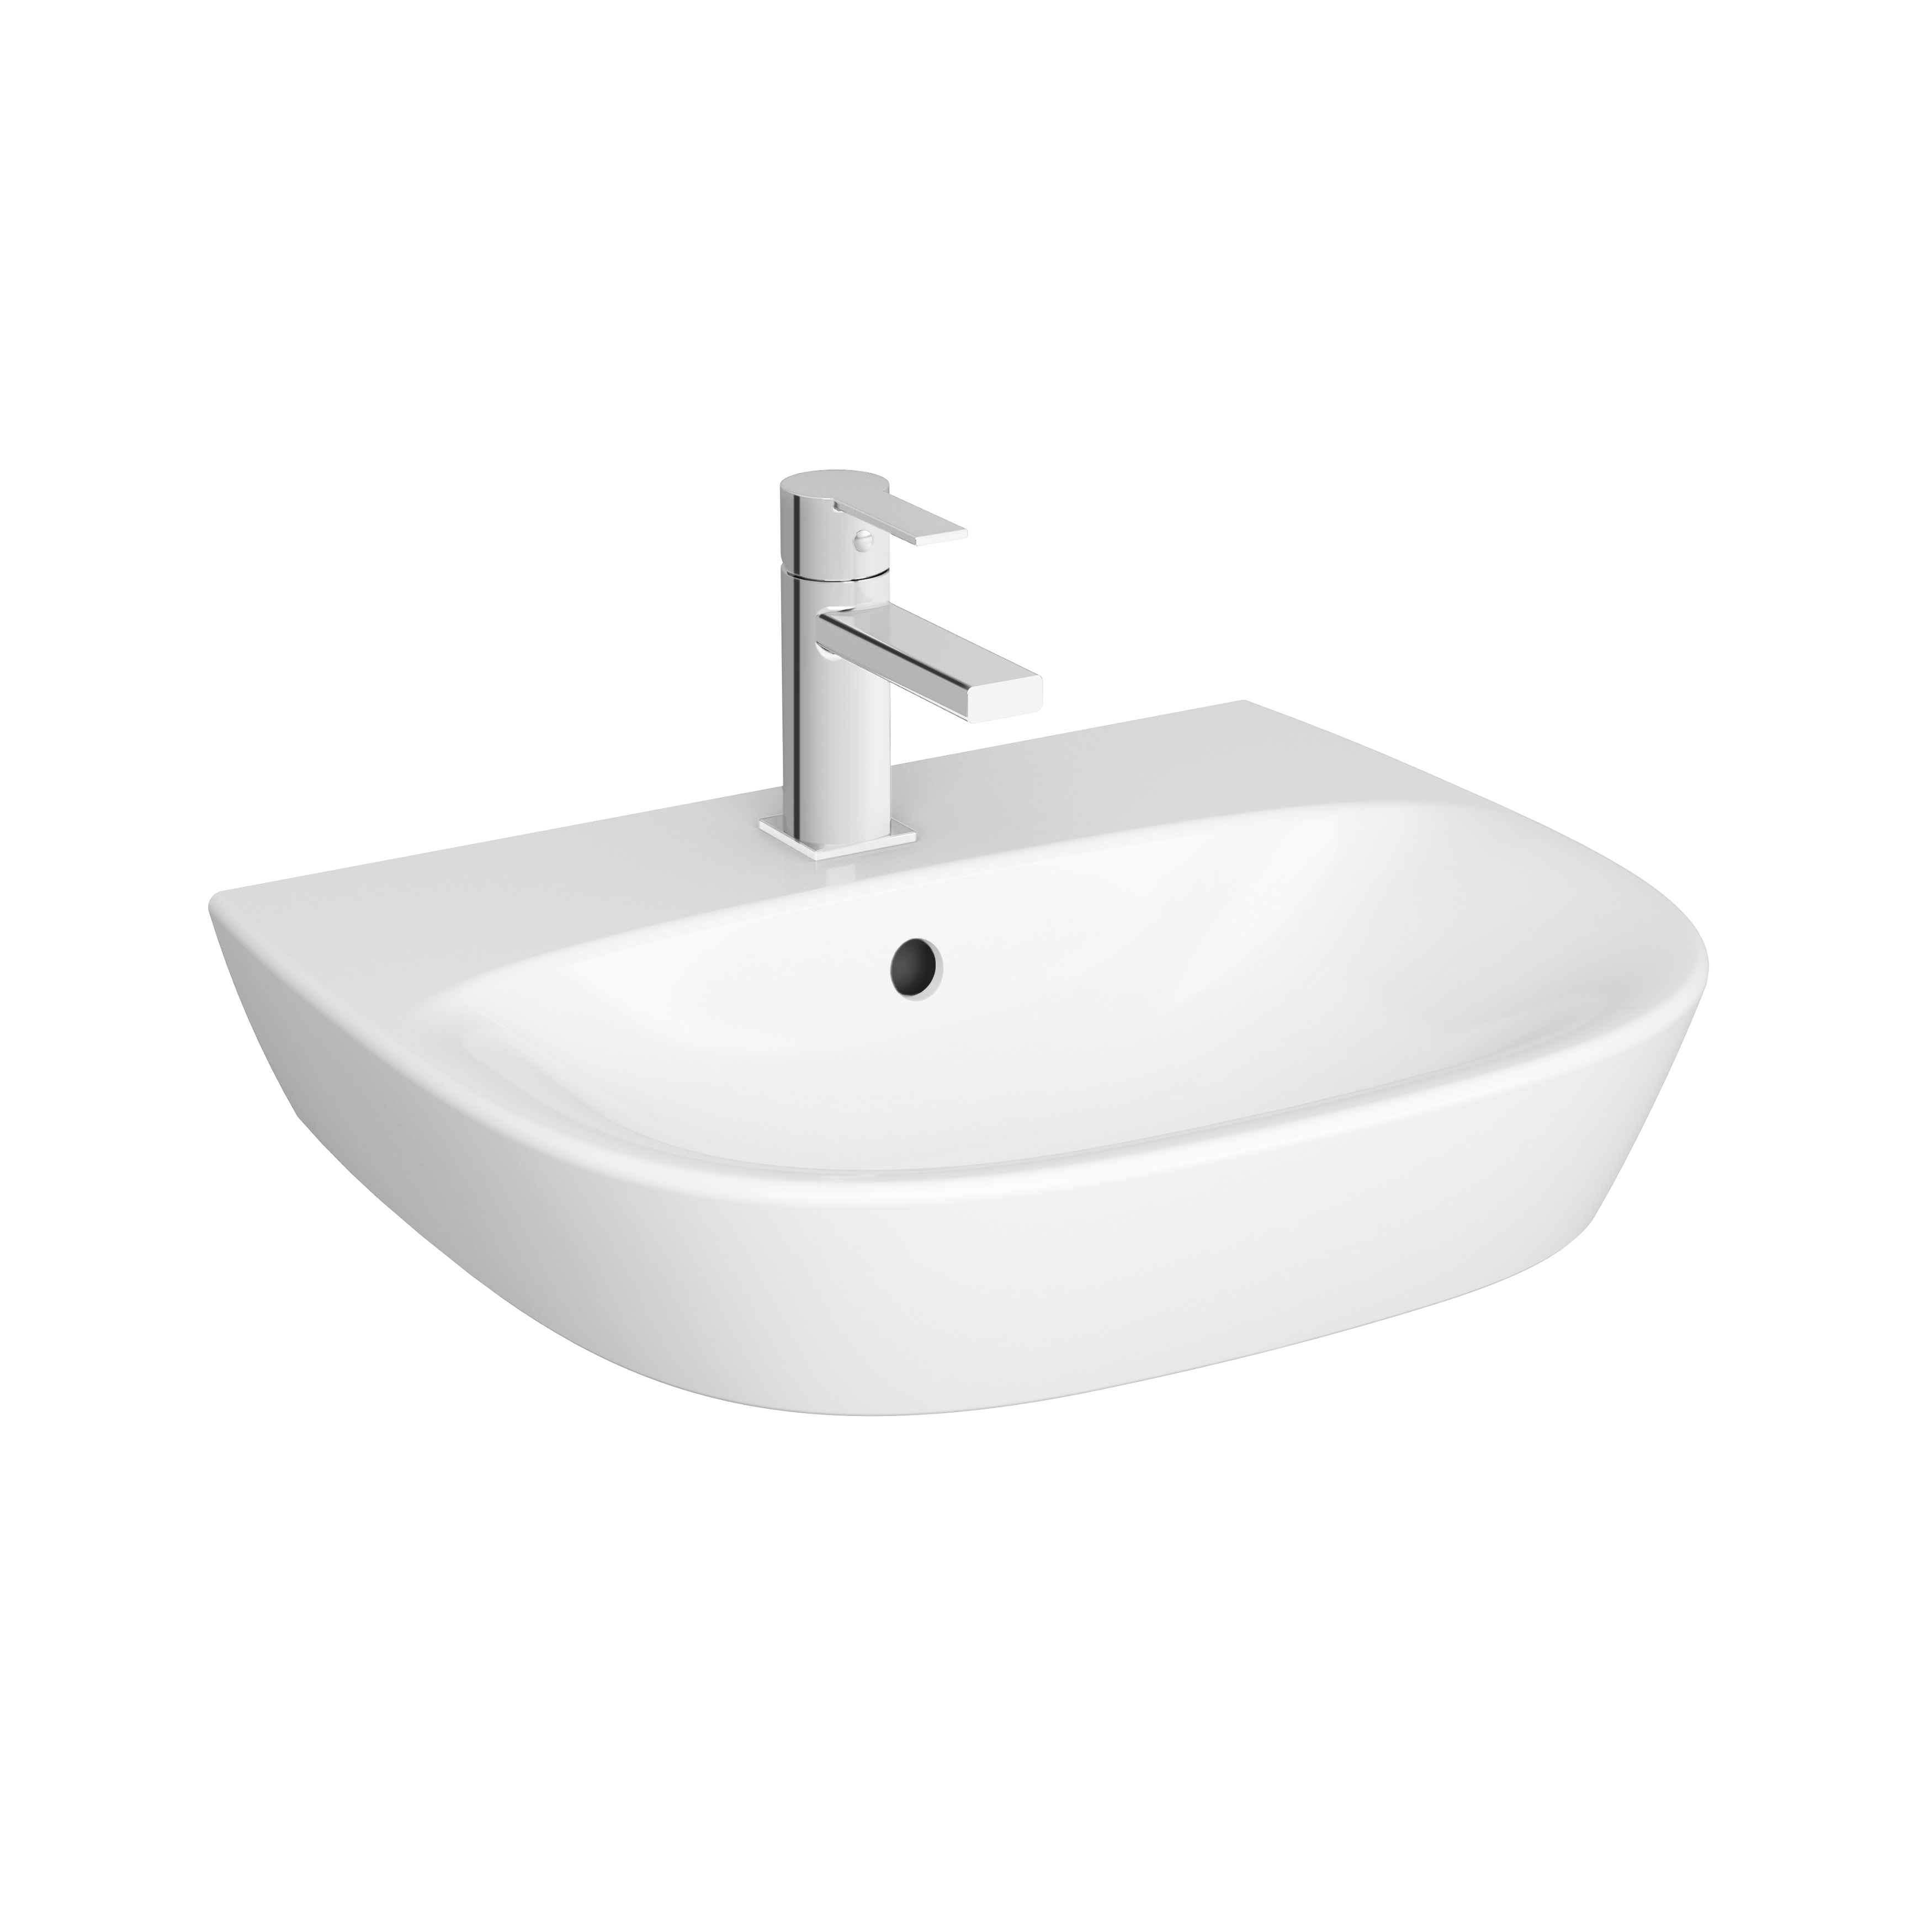 click on Basin & Pedestal image to enlarge